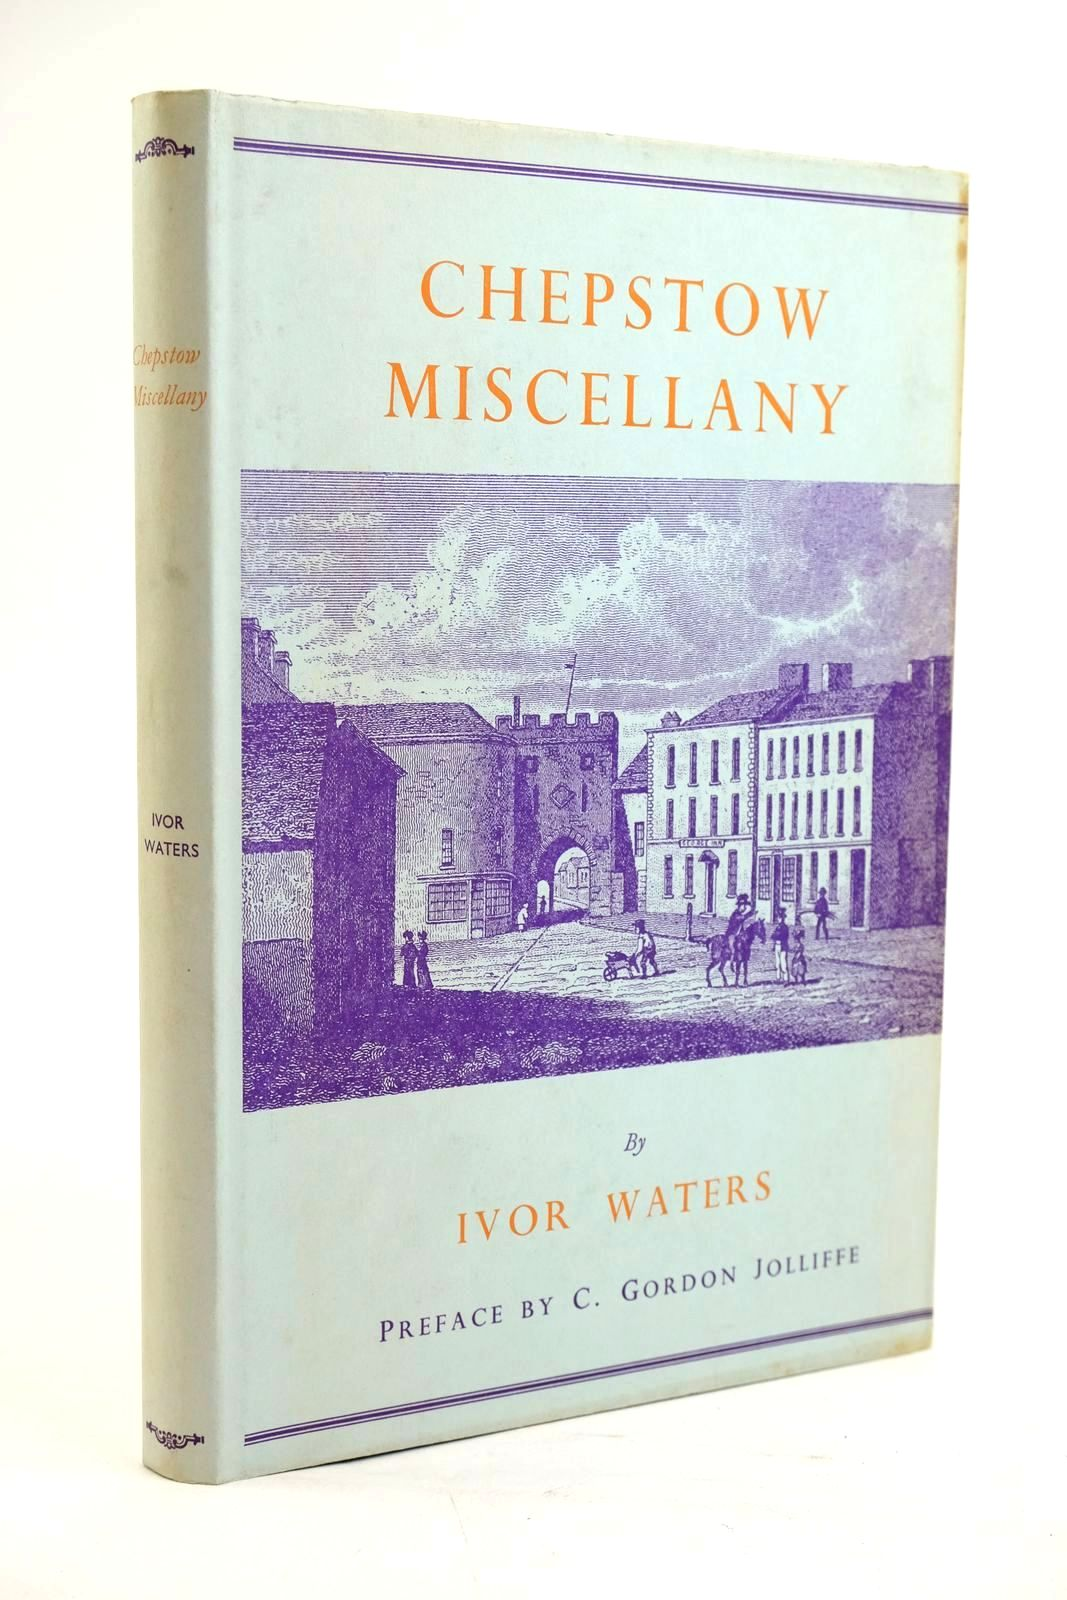 Photo of CHEPSTOW MISCELLANY written by Waters, Ivor published by The Chepstow Society (STOCK CODE: 1319529)  for sale by Stella & Rose's Books